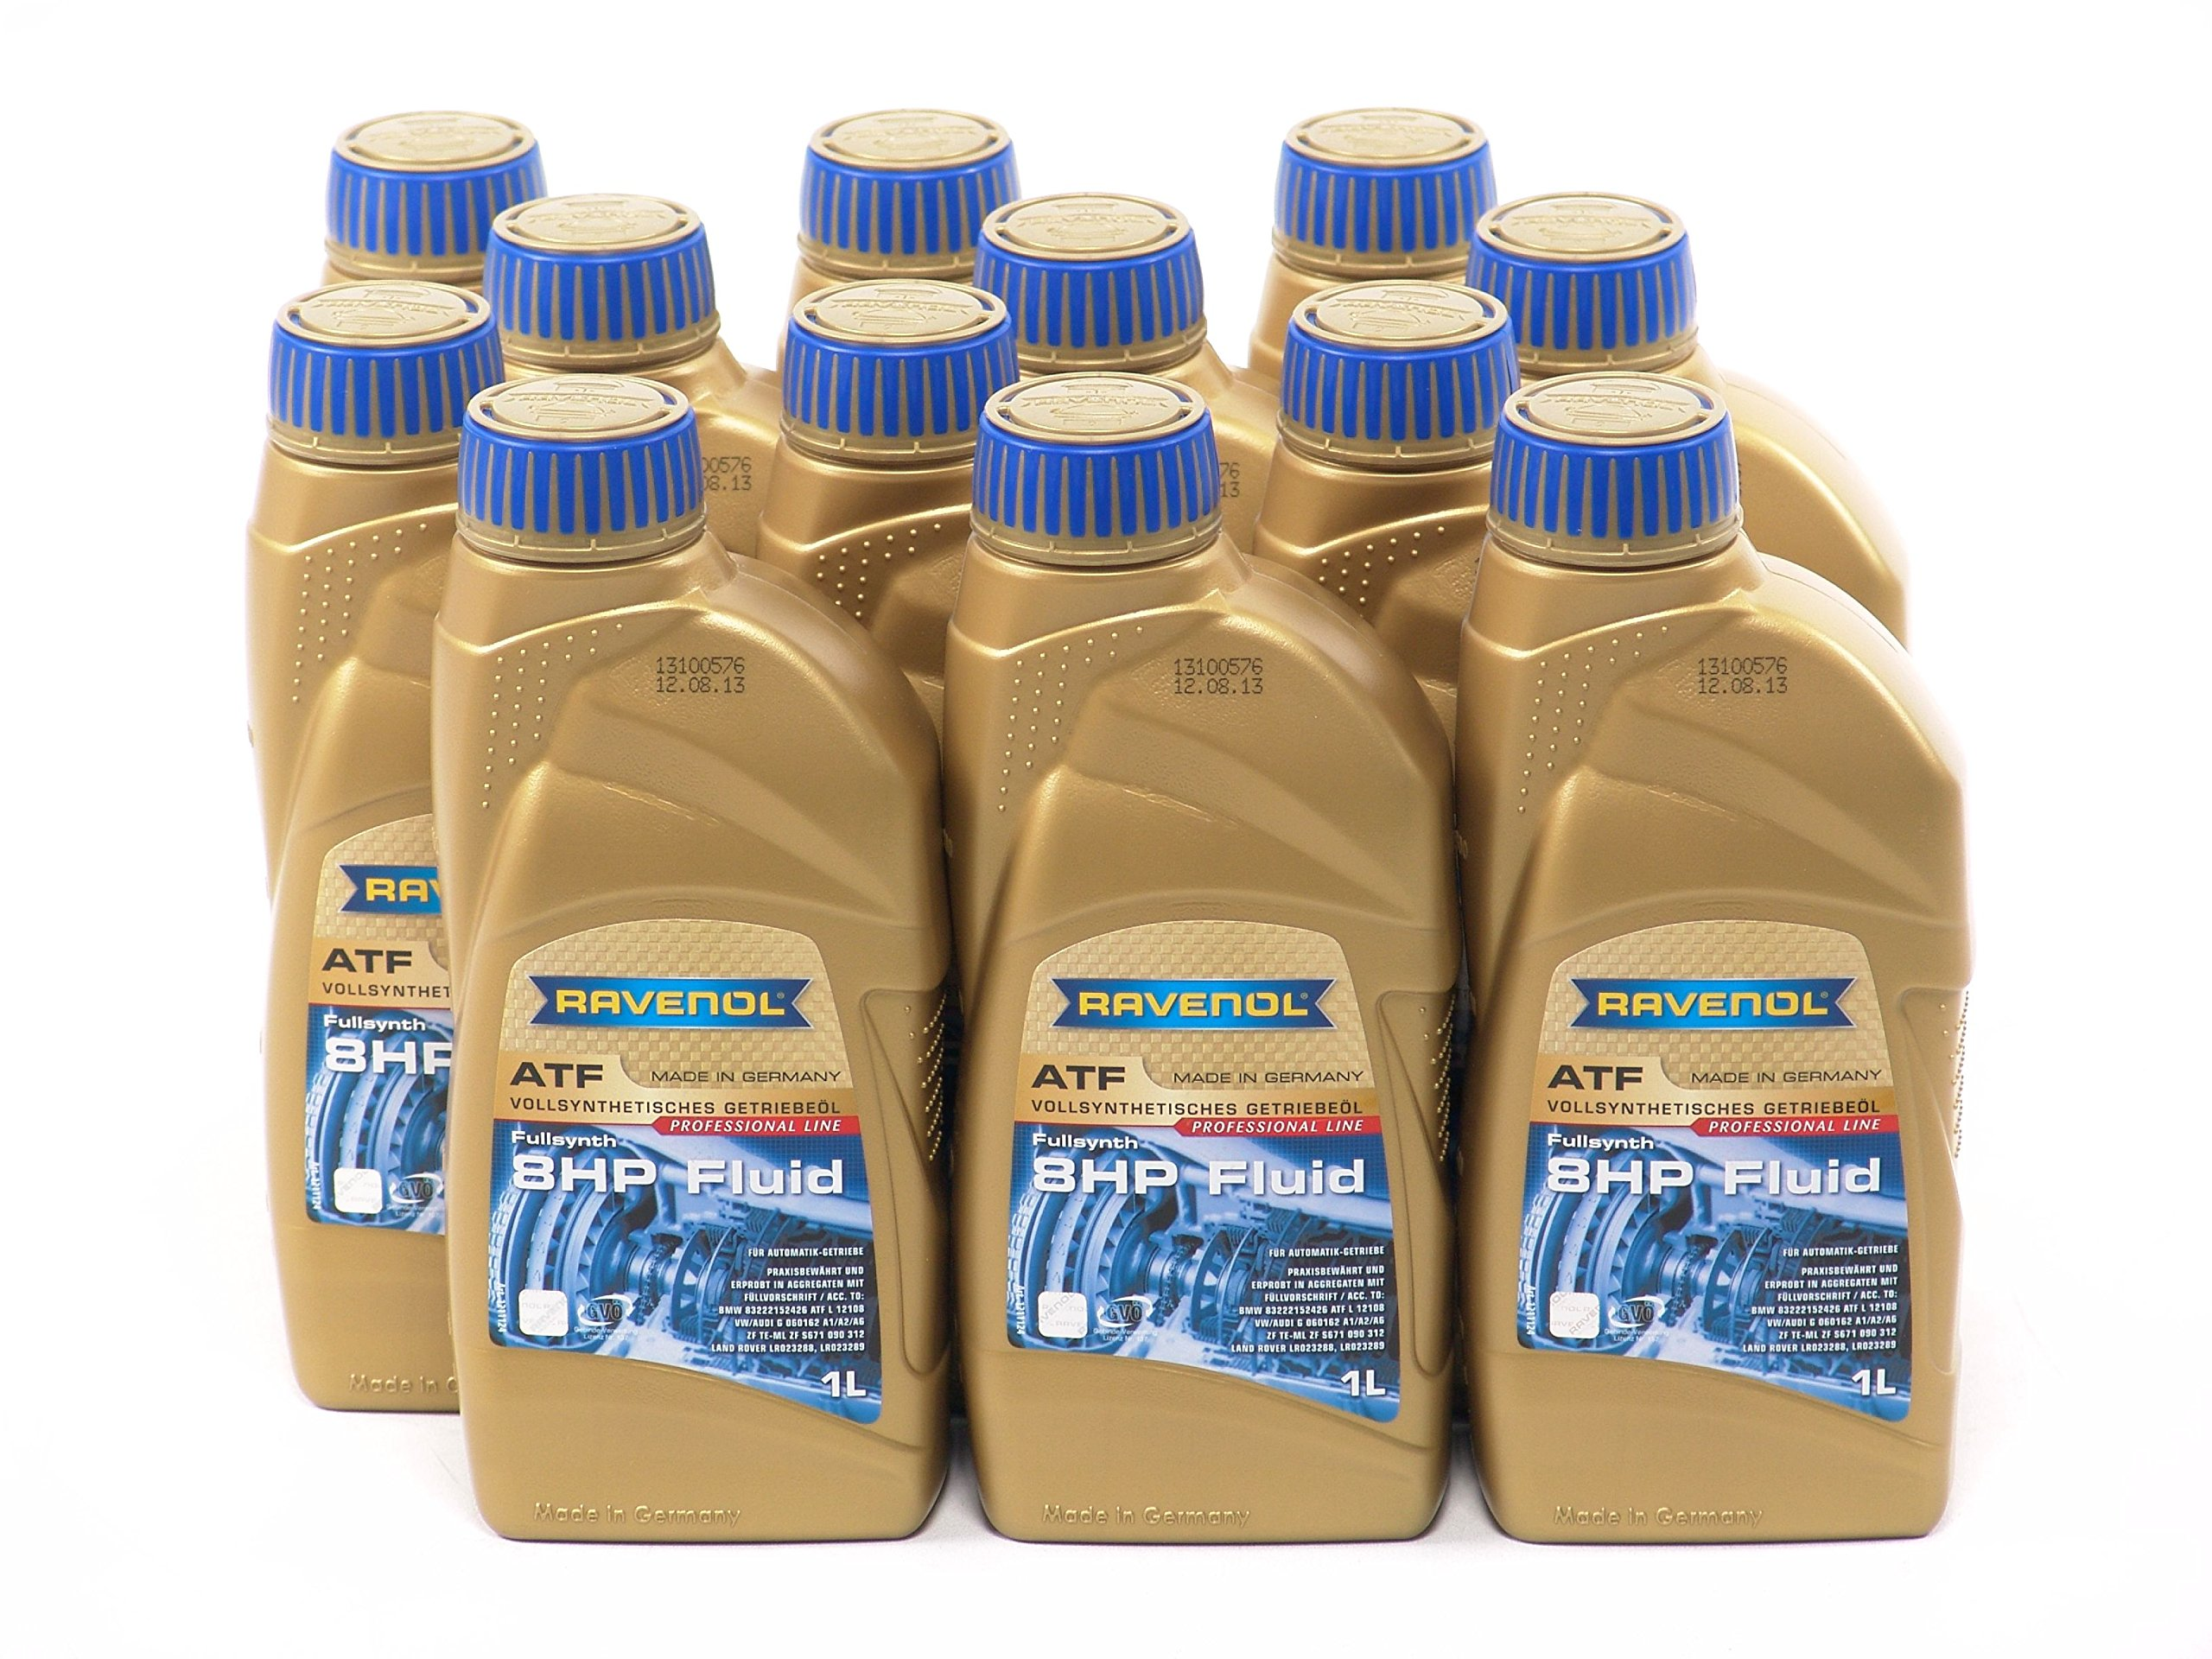 RAVENOL J1D2113-12 ATF (Automatic Transmission Fluid) - 8 HP 8-Speed & 6-Speed ZF Transmissions (1L, Case of 12)